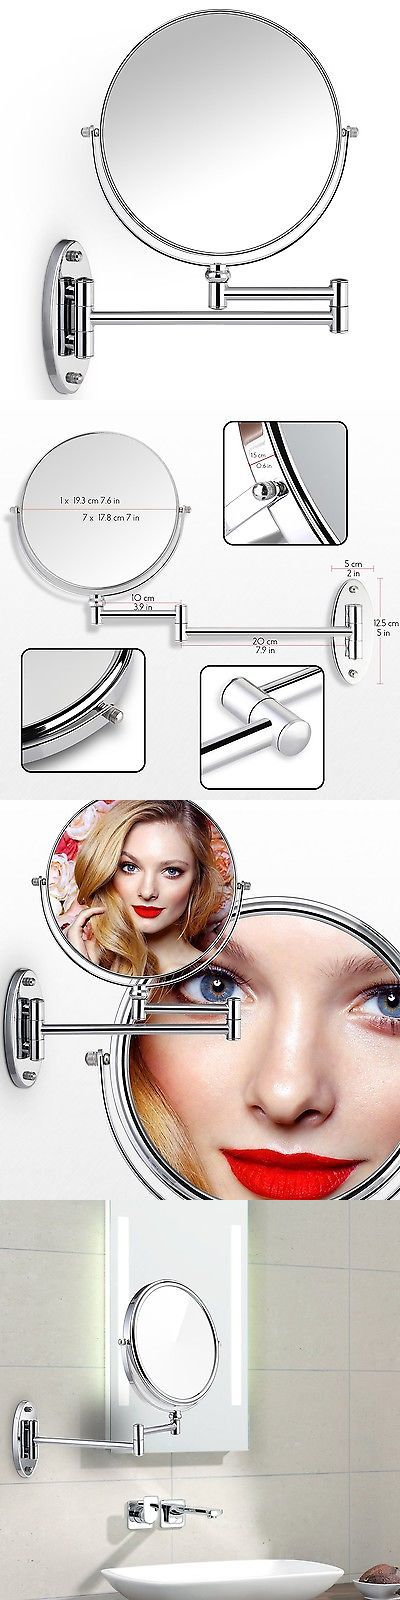 Makeup Mirrors: Miusco 7X Magnifying Two Sided Vanity Makeup Mirror Wall Mount Round Chrome -> BUY IT NOW ONLY: $31.21 on eBay!